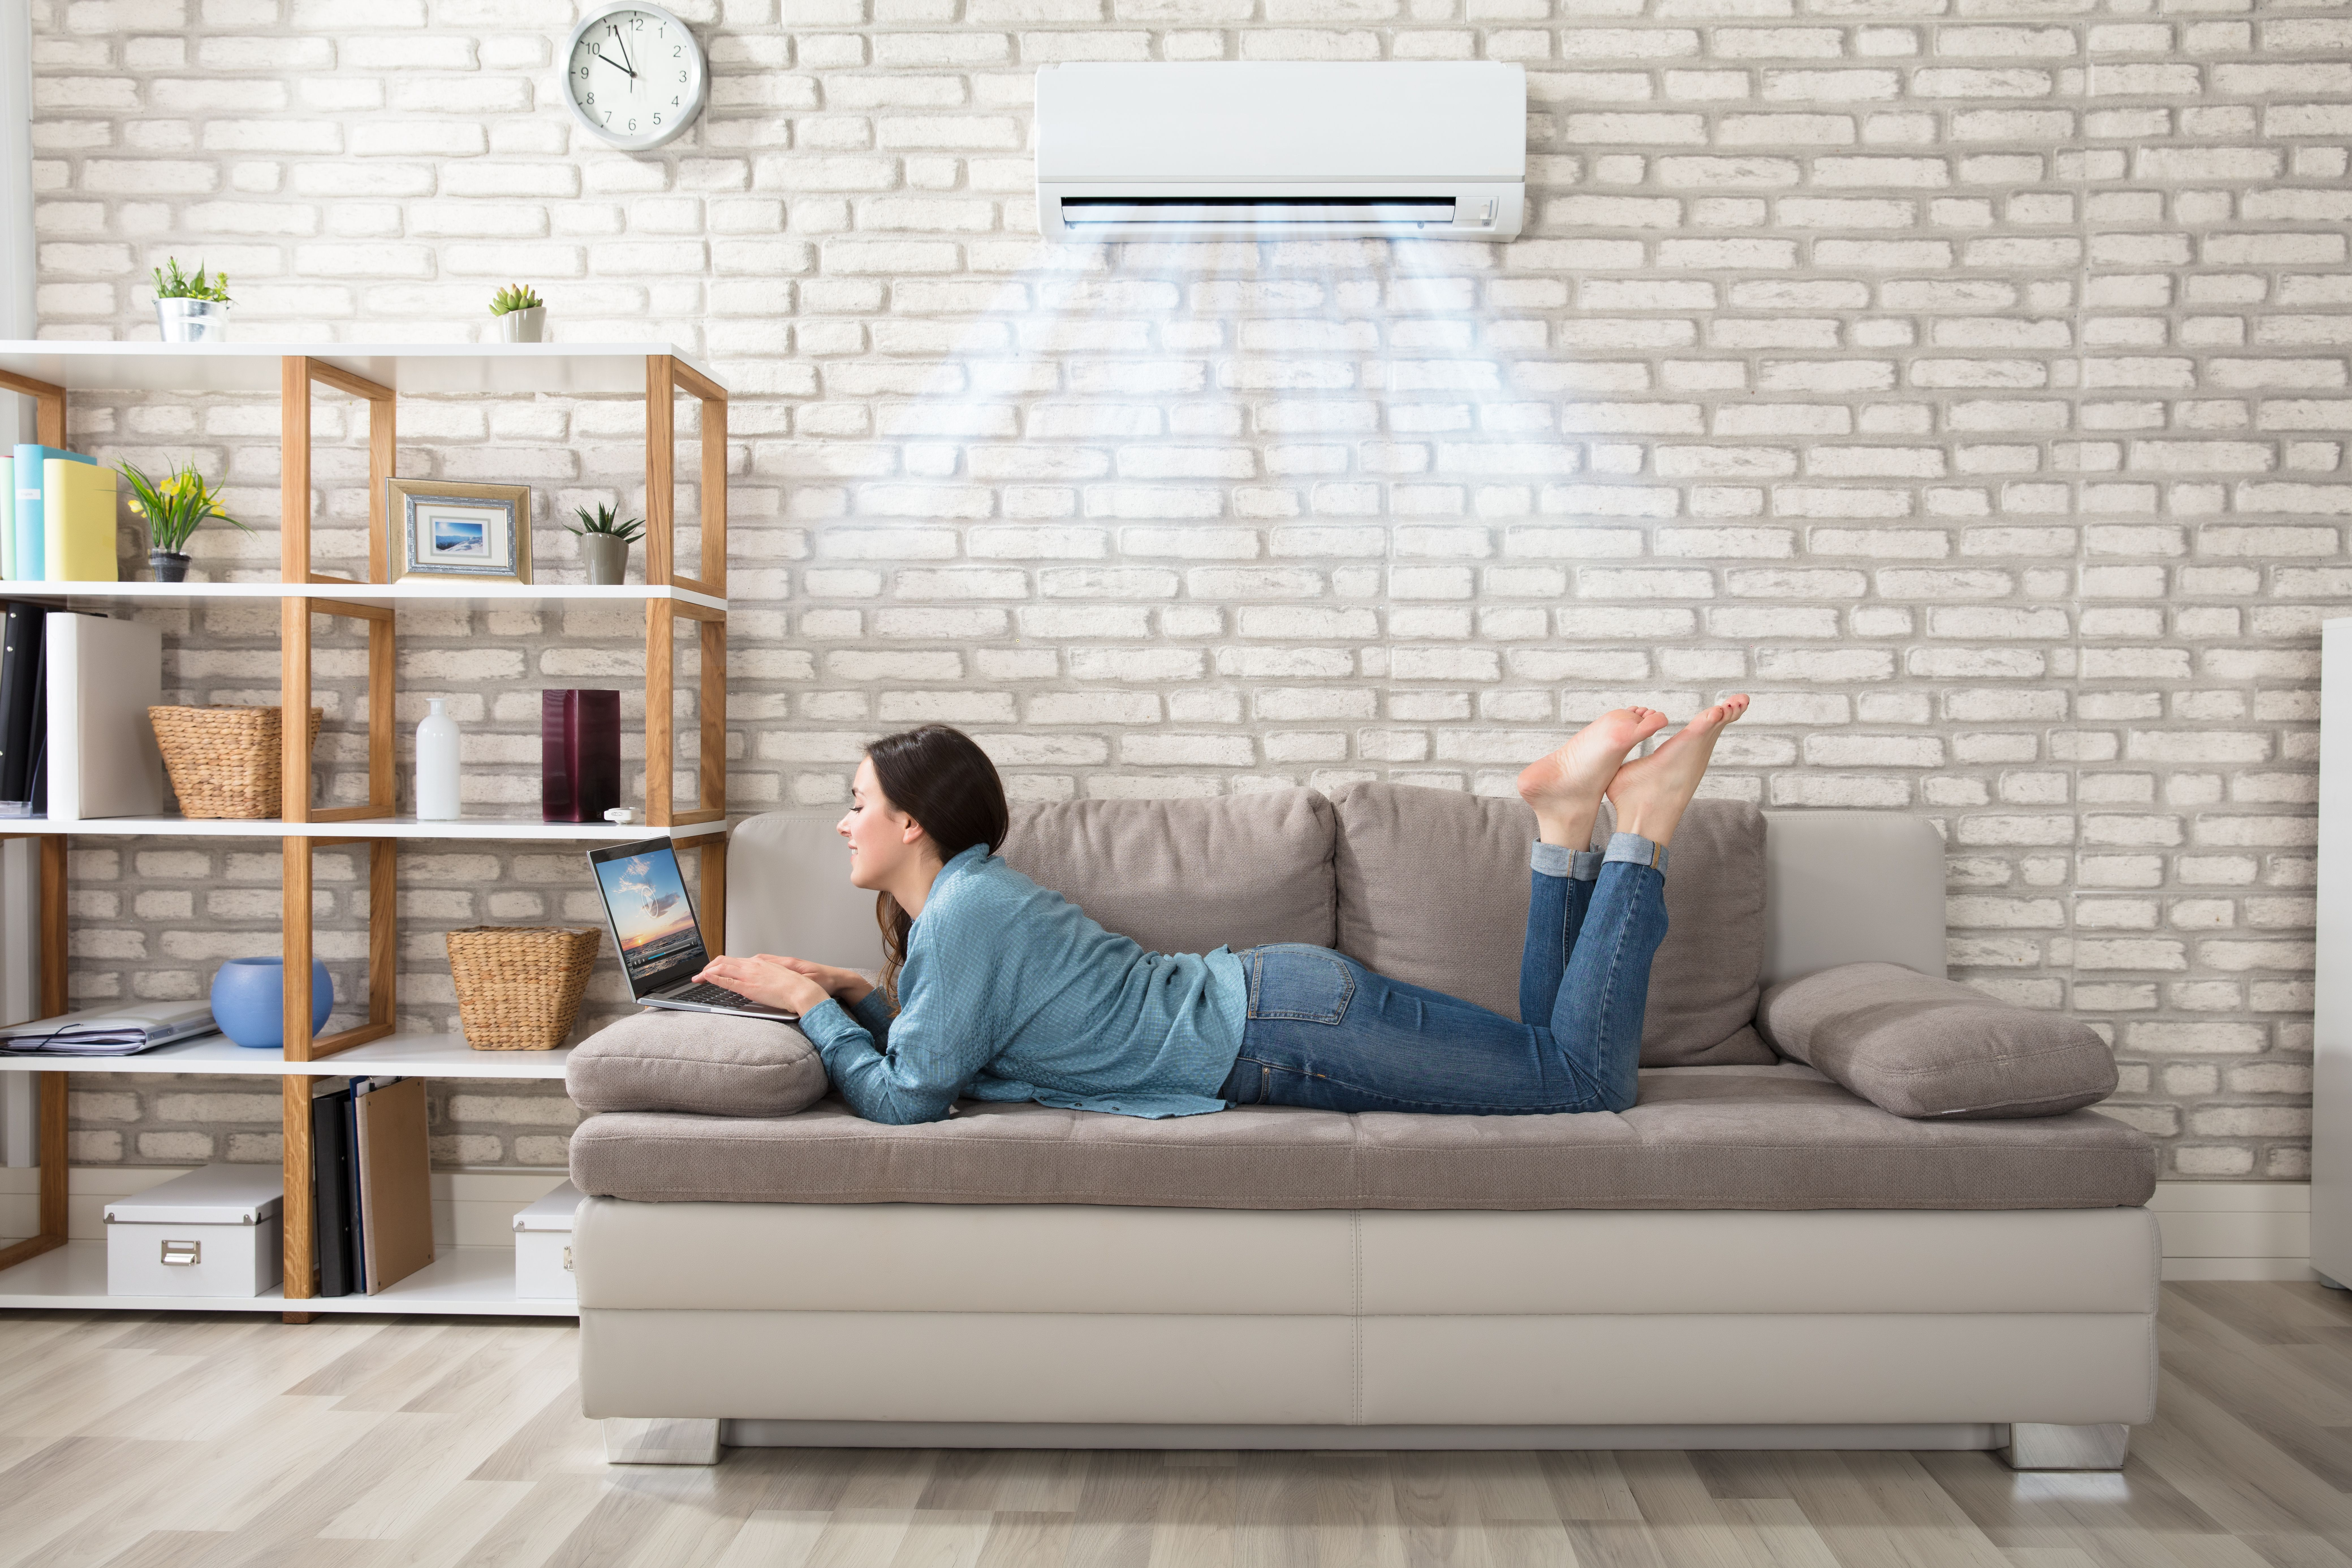 Top 10 Creative Uses for Smart Plugs Air conditioner